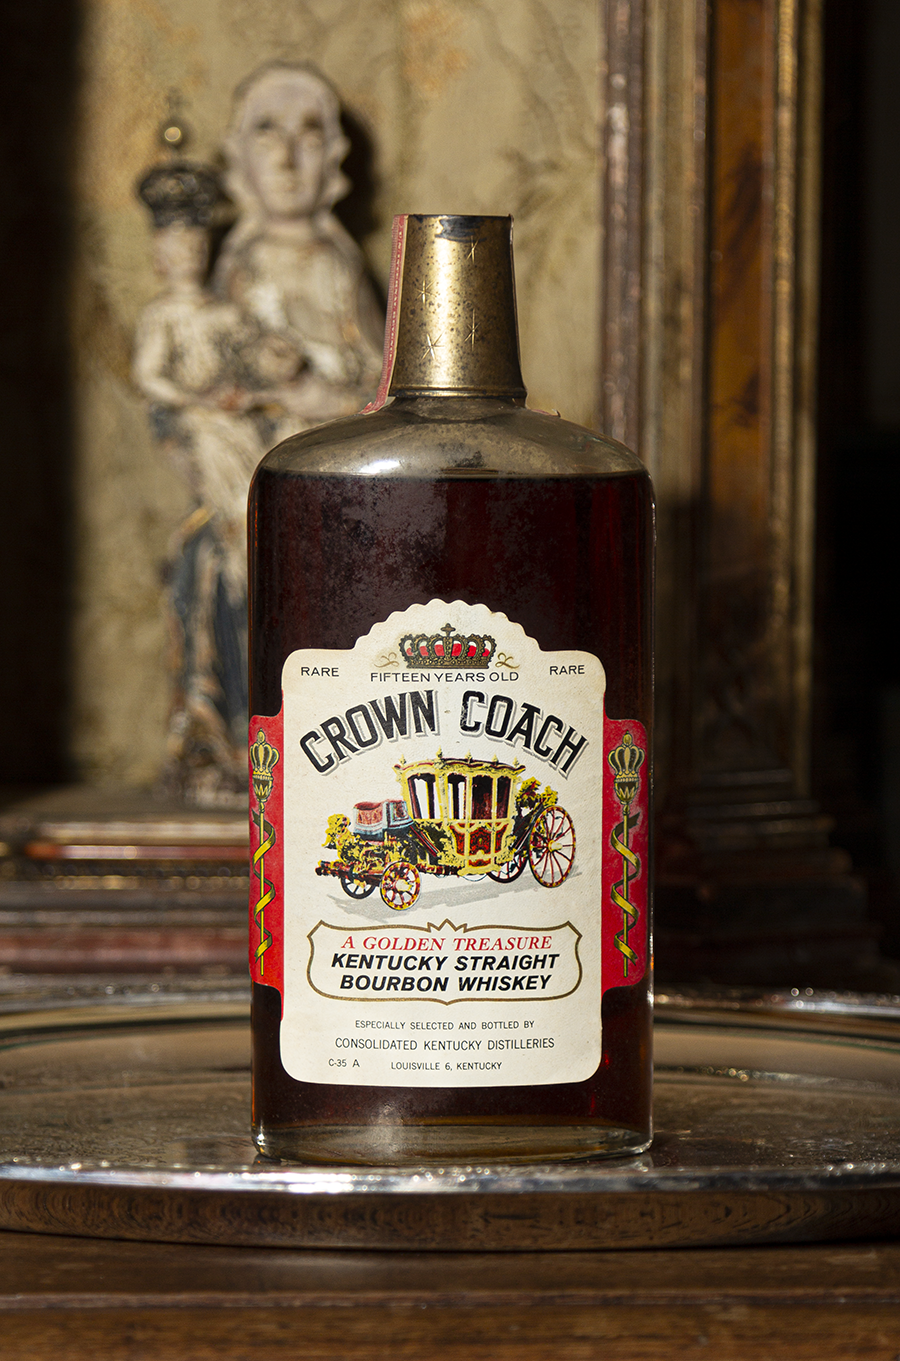 One of the highlights of Michael Veach's Bourbon Salon events at Oxmoor Farm is getting to taste a vintage Bourbon from the Bullitt family's wine cellar at the estate in Louisville. The latest Salon featured this rare 15-year-old Crown Coach Bourbon from the 1960's.